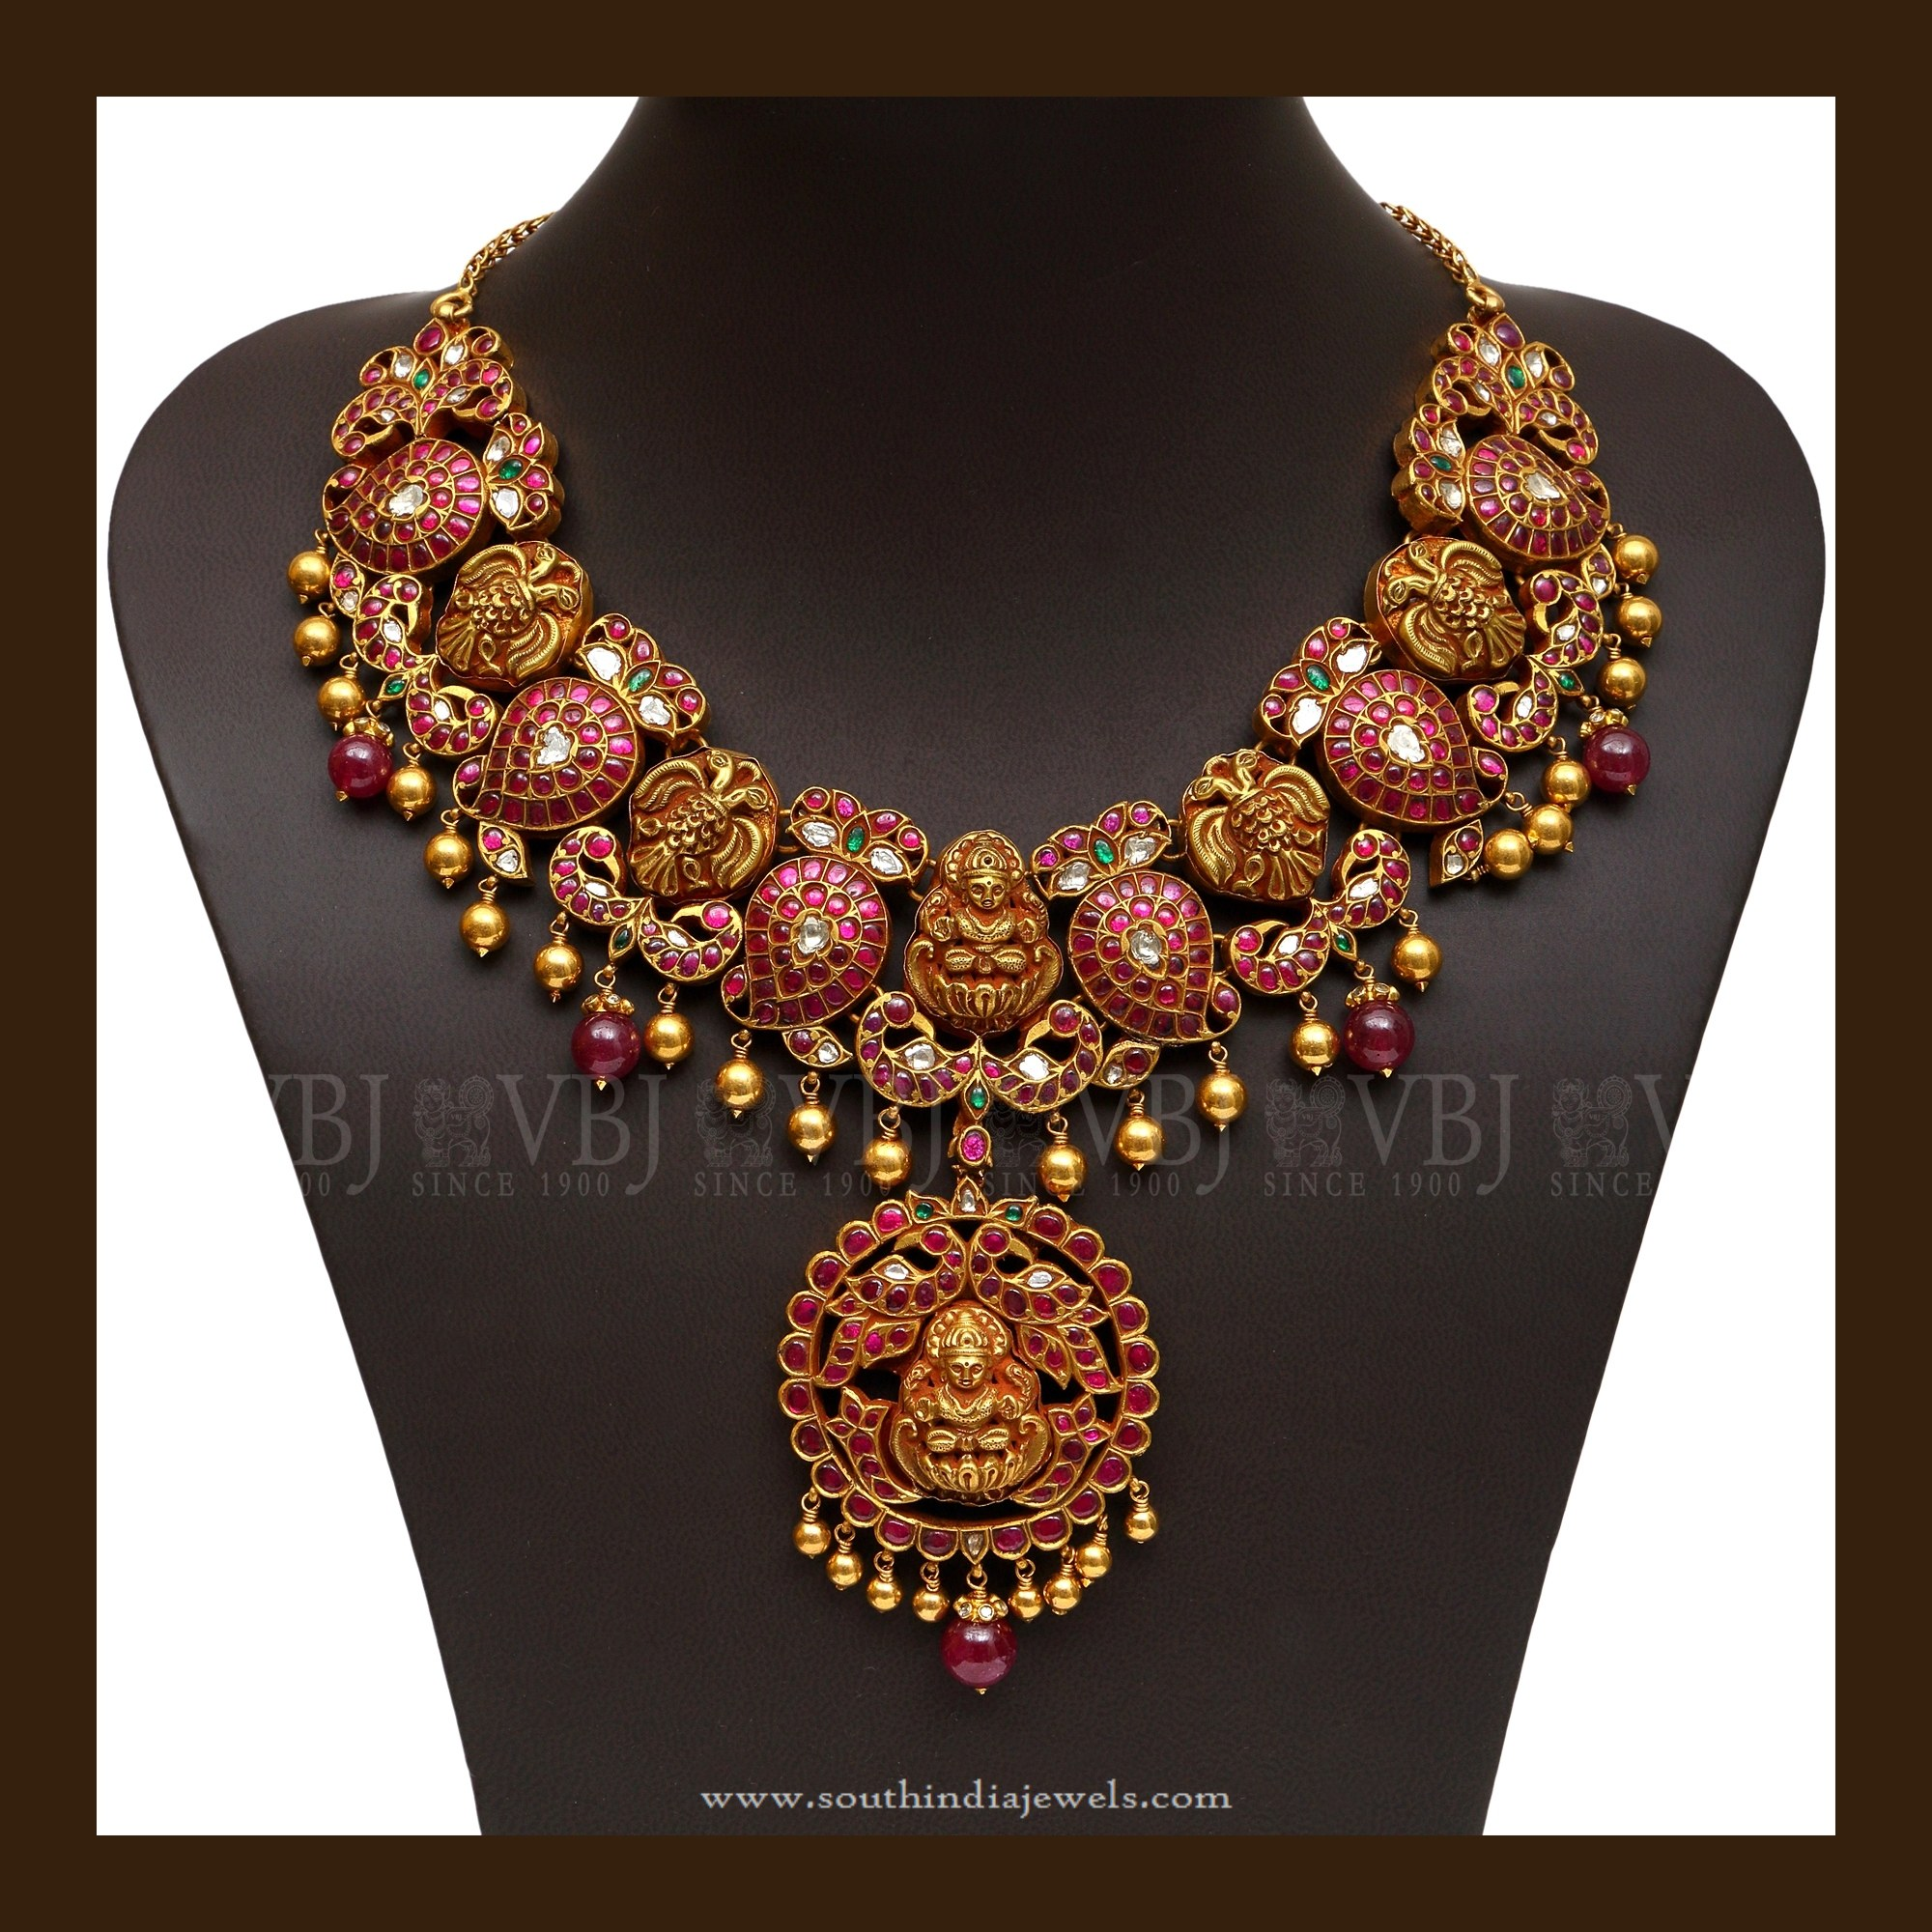 Gold Jewellery Designs With Weight And Price ~ South India Jewels